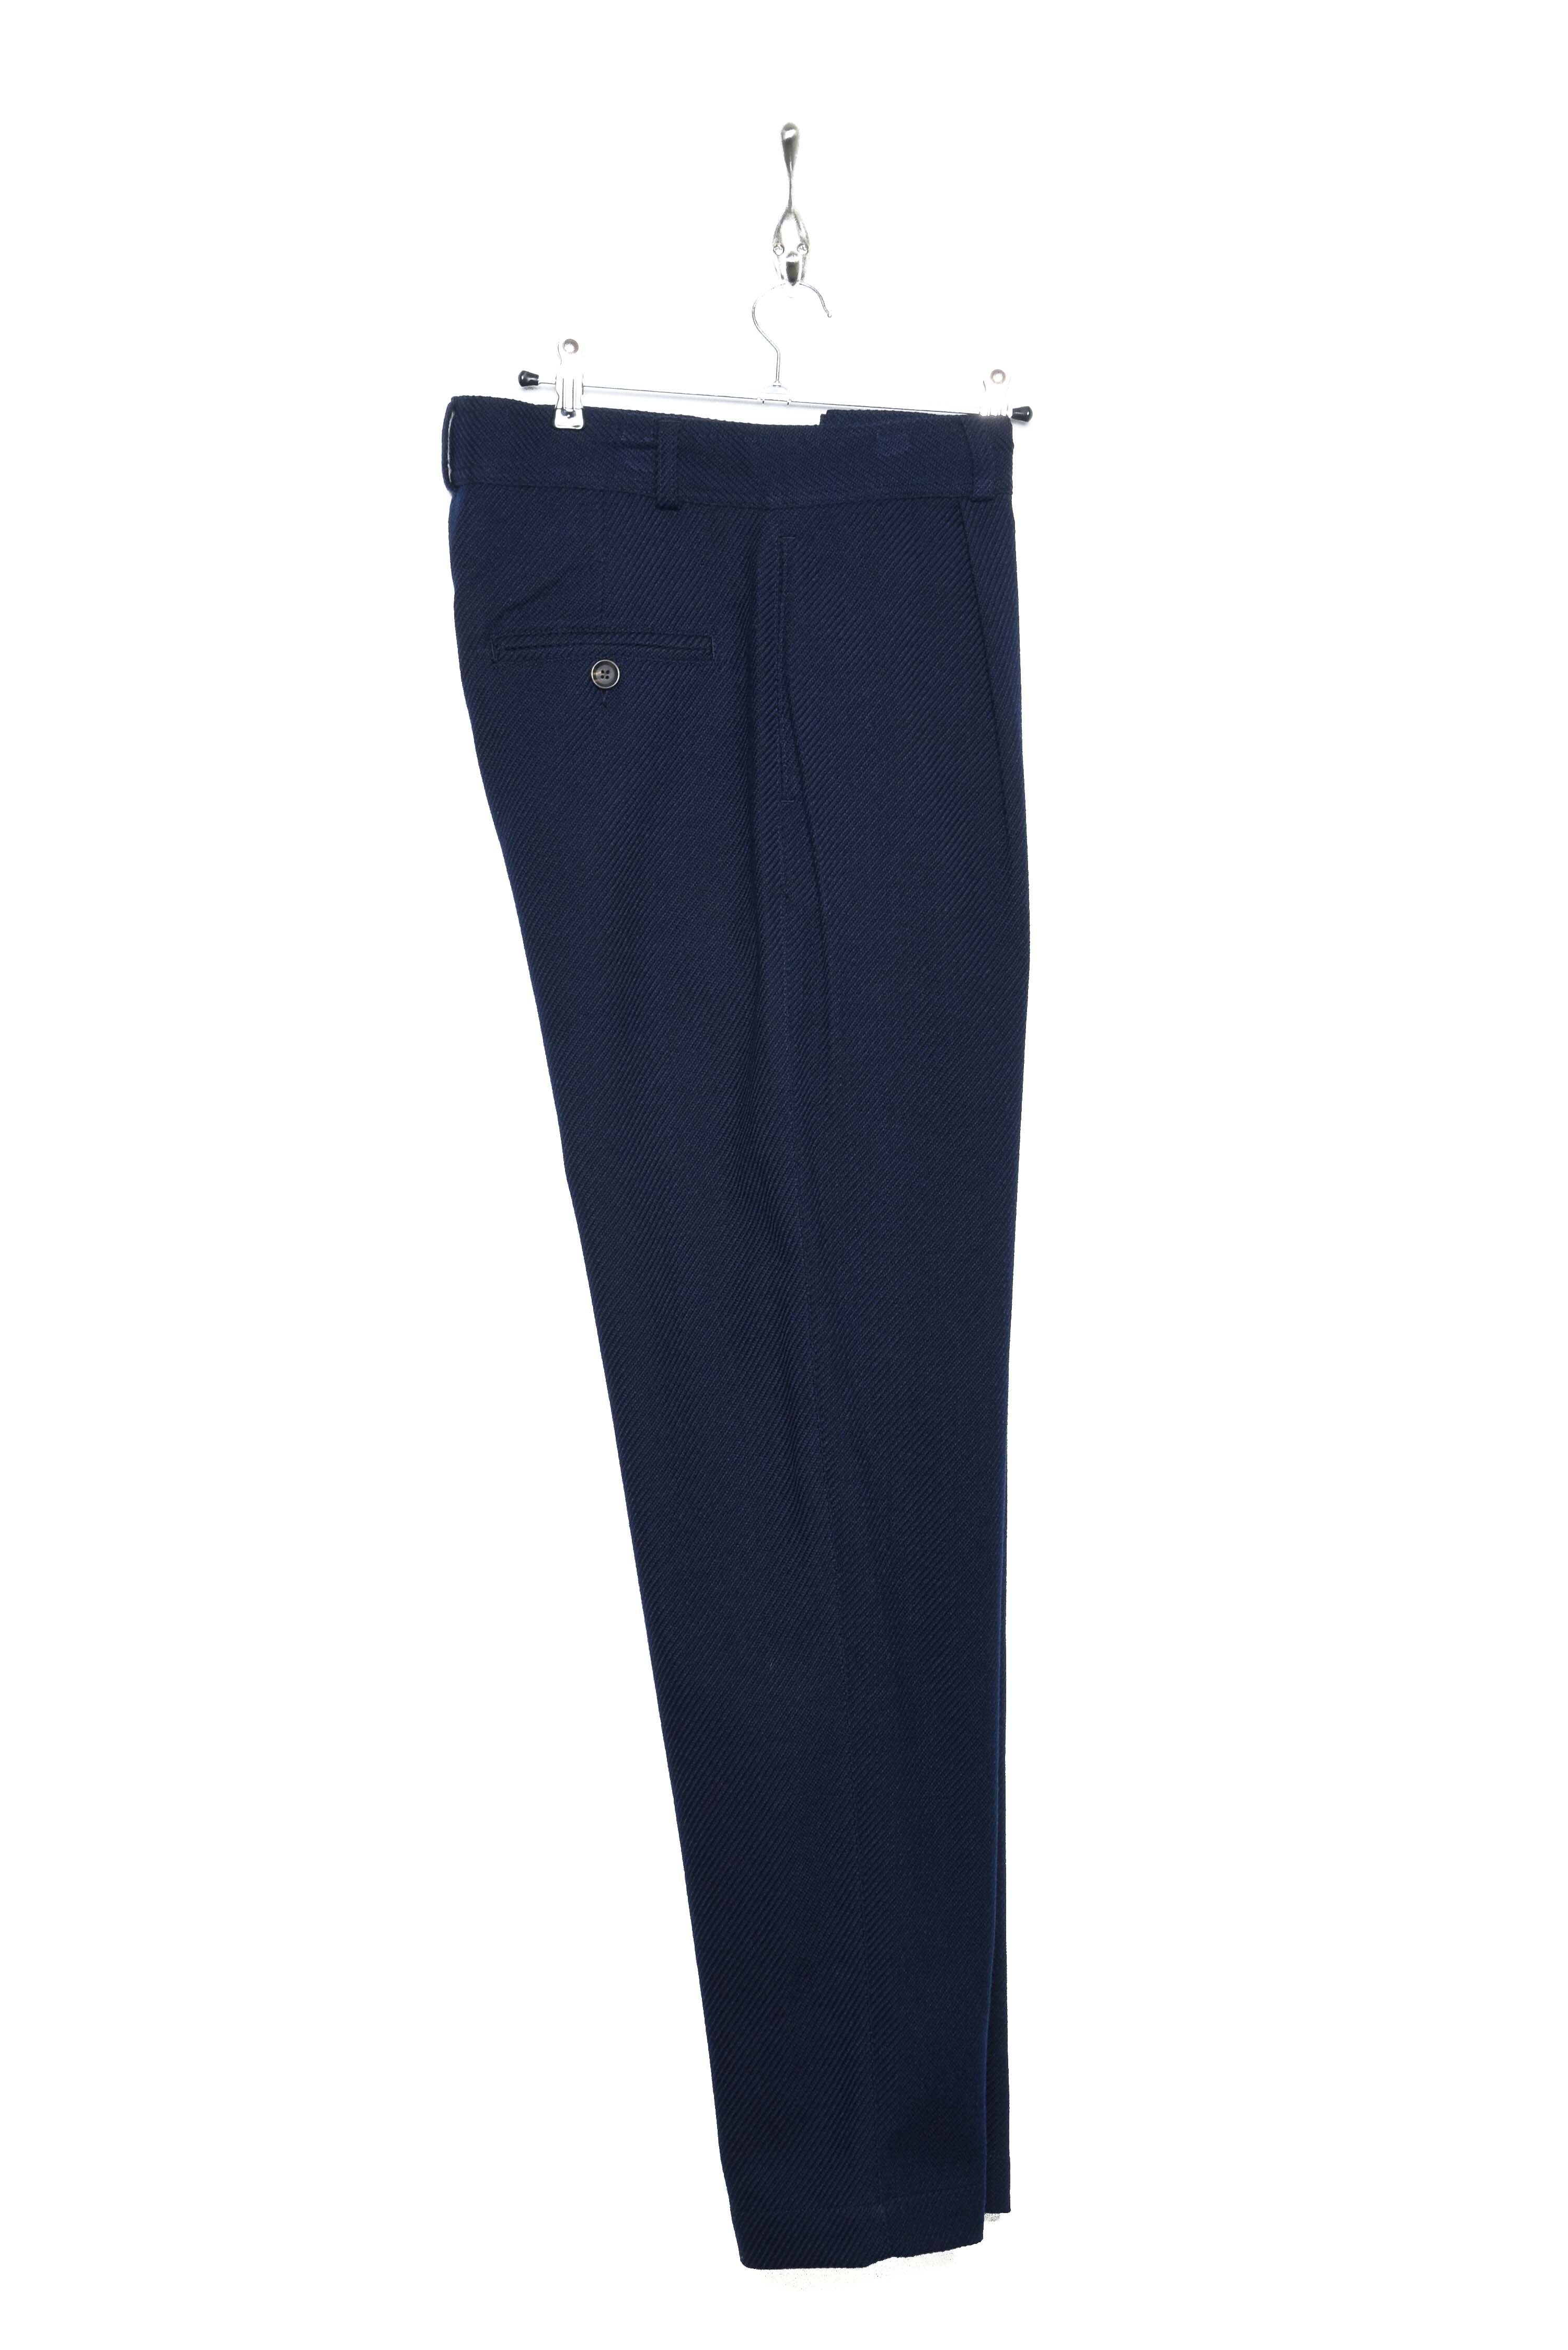 Pleated Trousers buttress navy